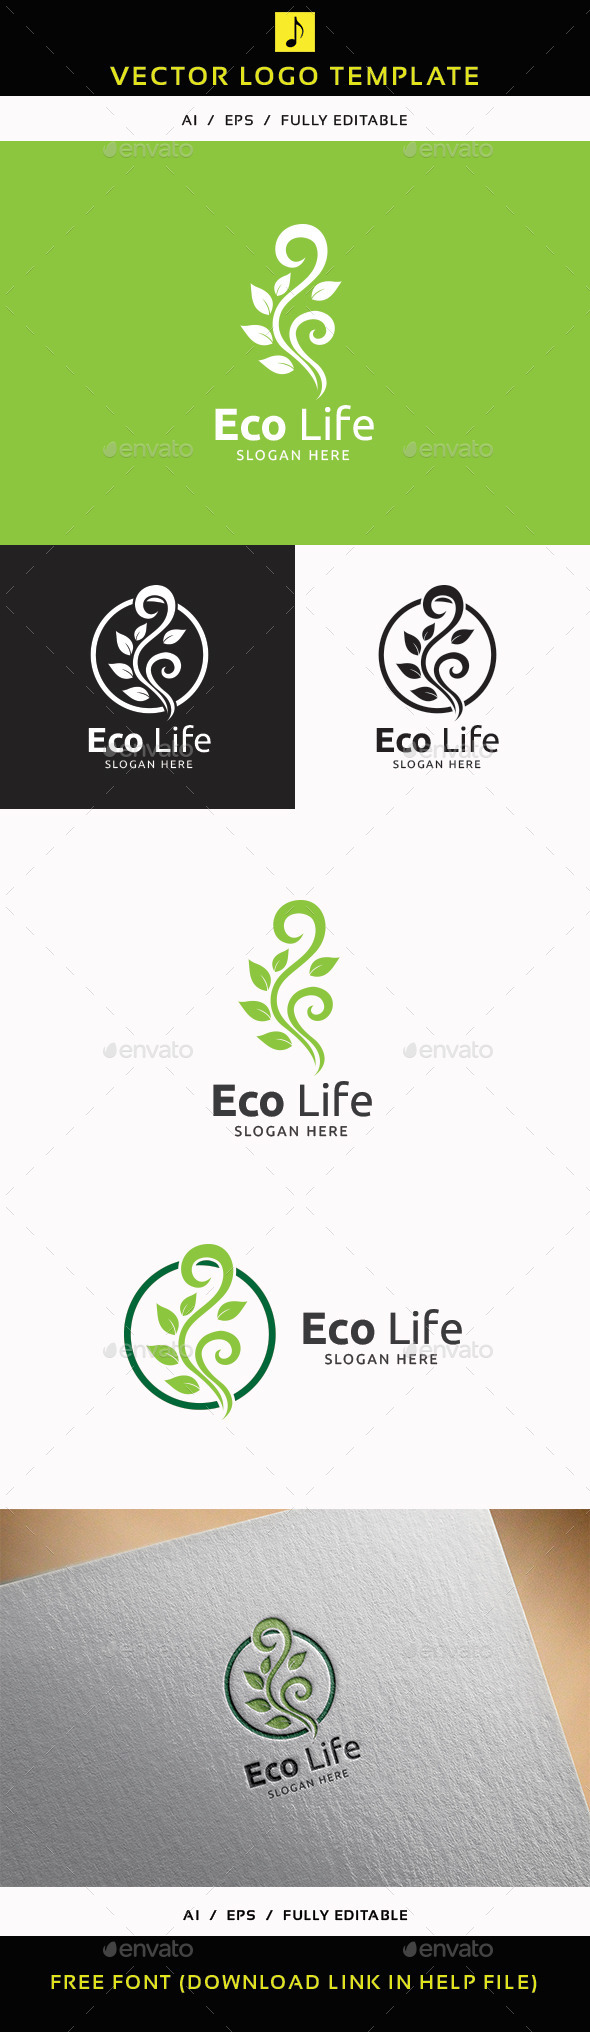 GraphicRiver Eco Life V.2 11892263